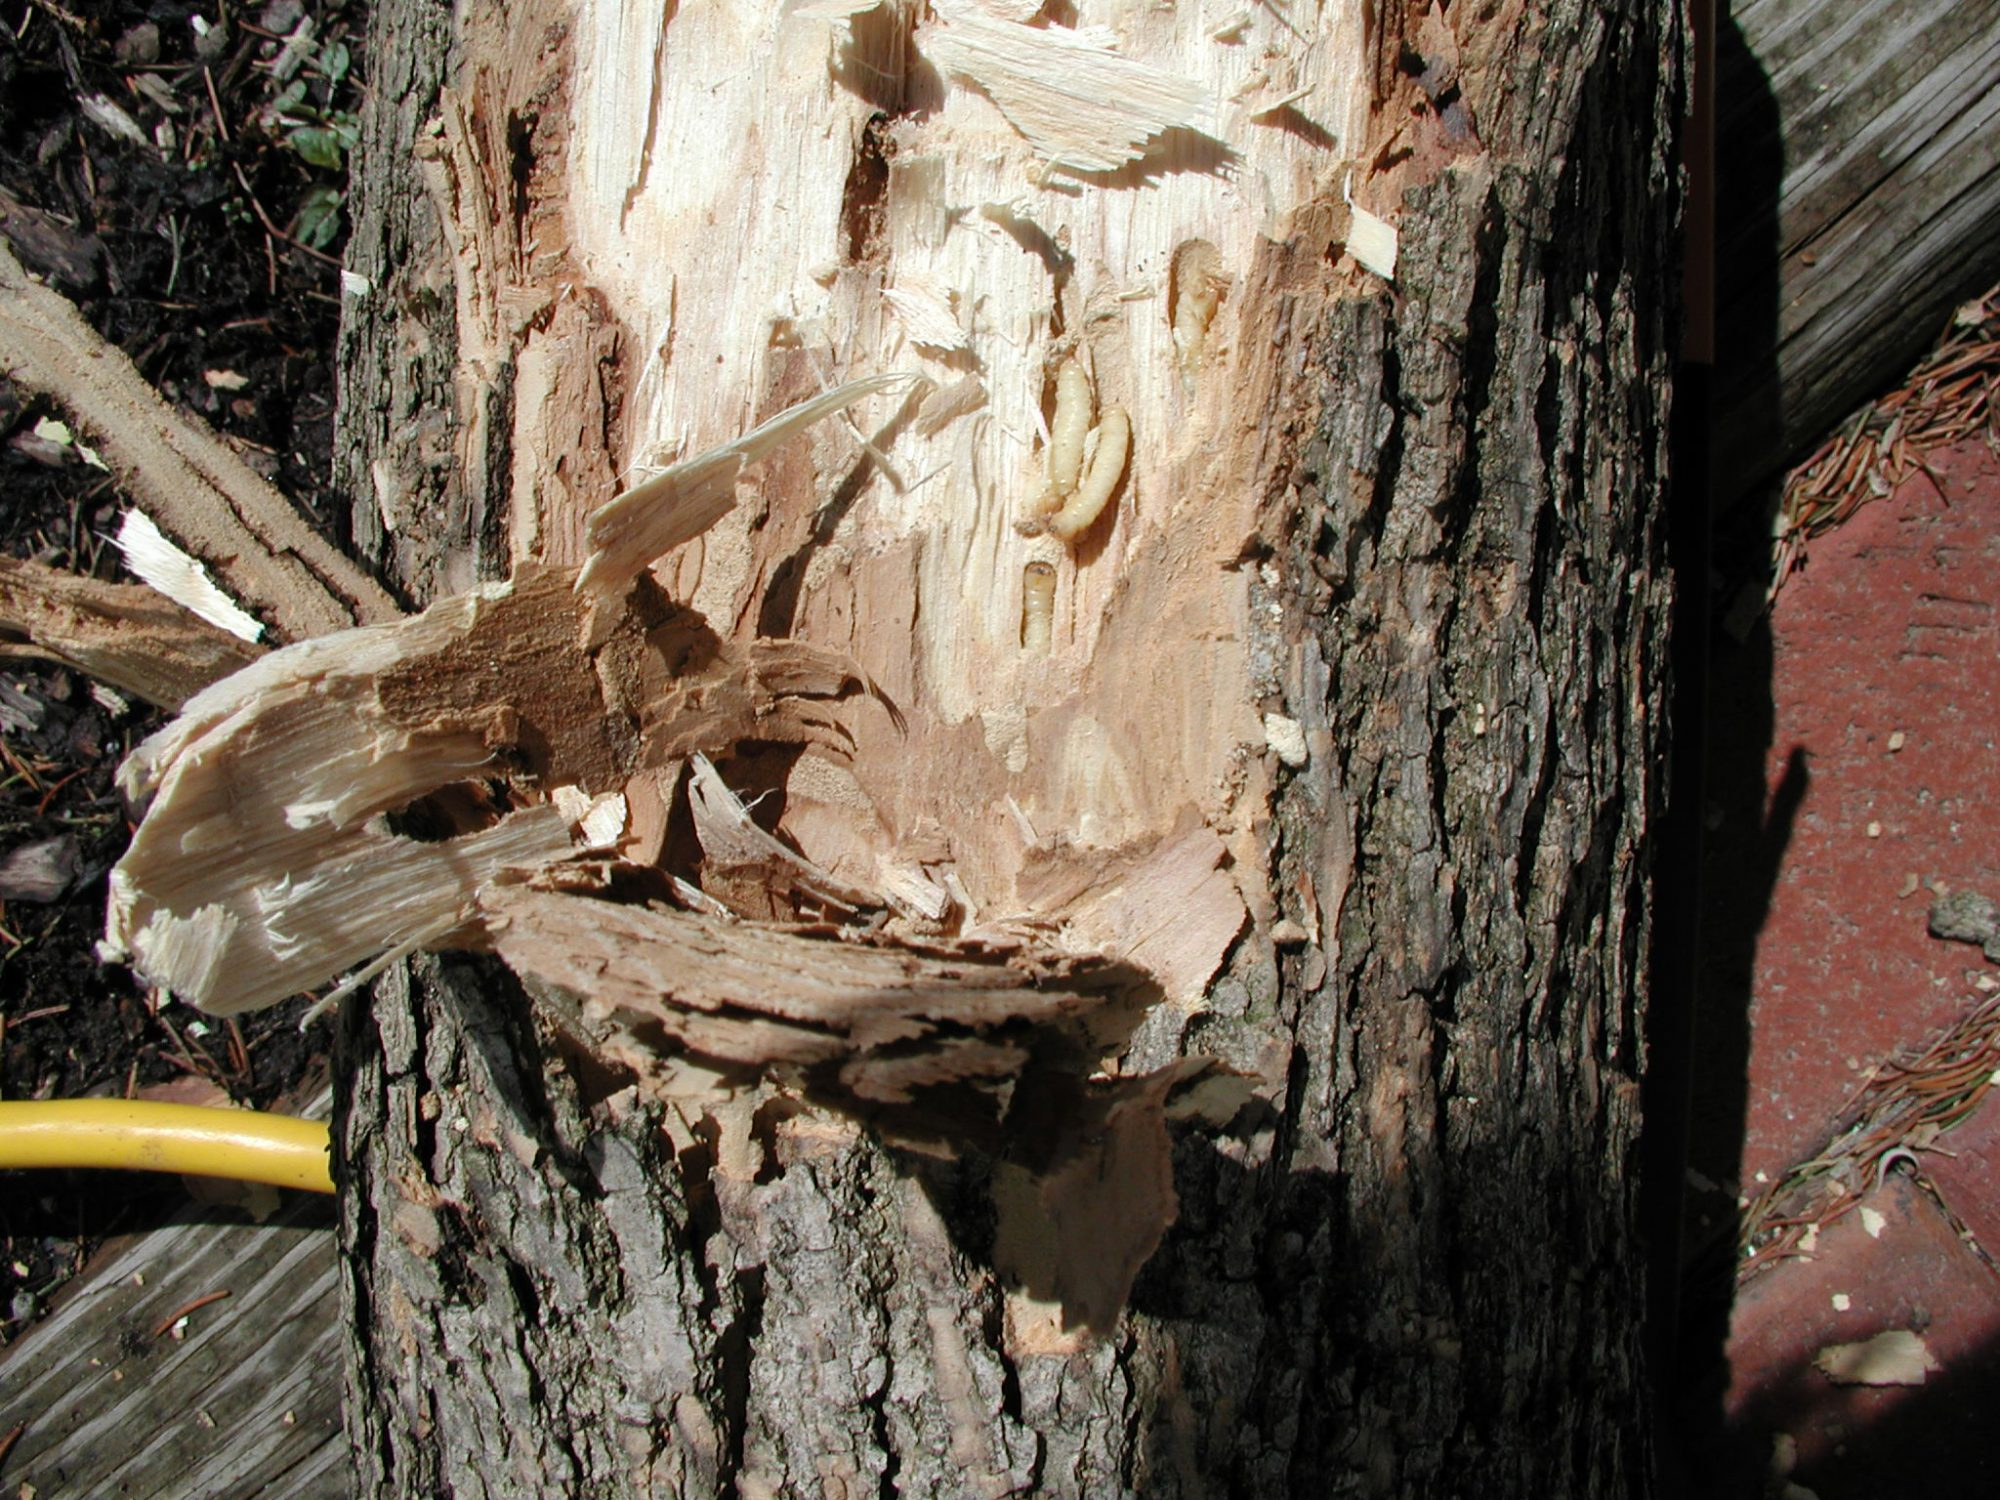 emerald ash borer larvae feed and burrow inside a tree